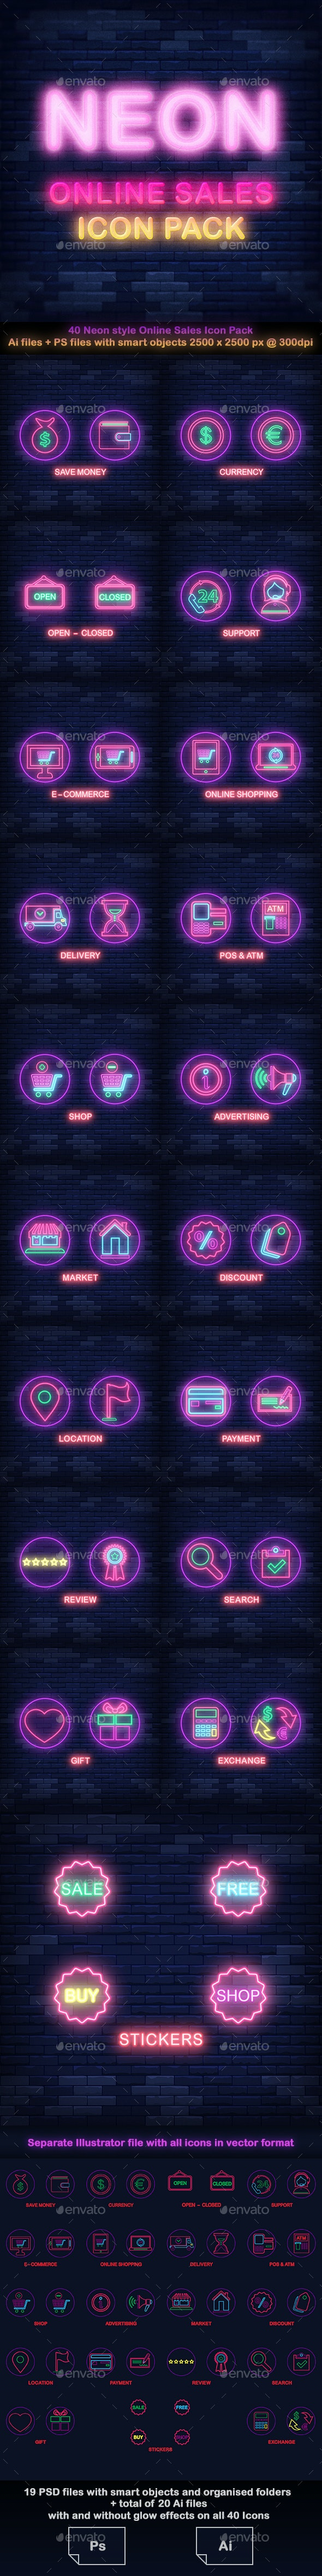 Neon Online Sales Icon Pack - Icons